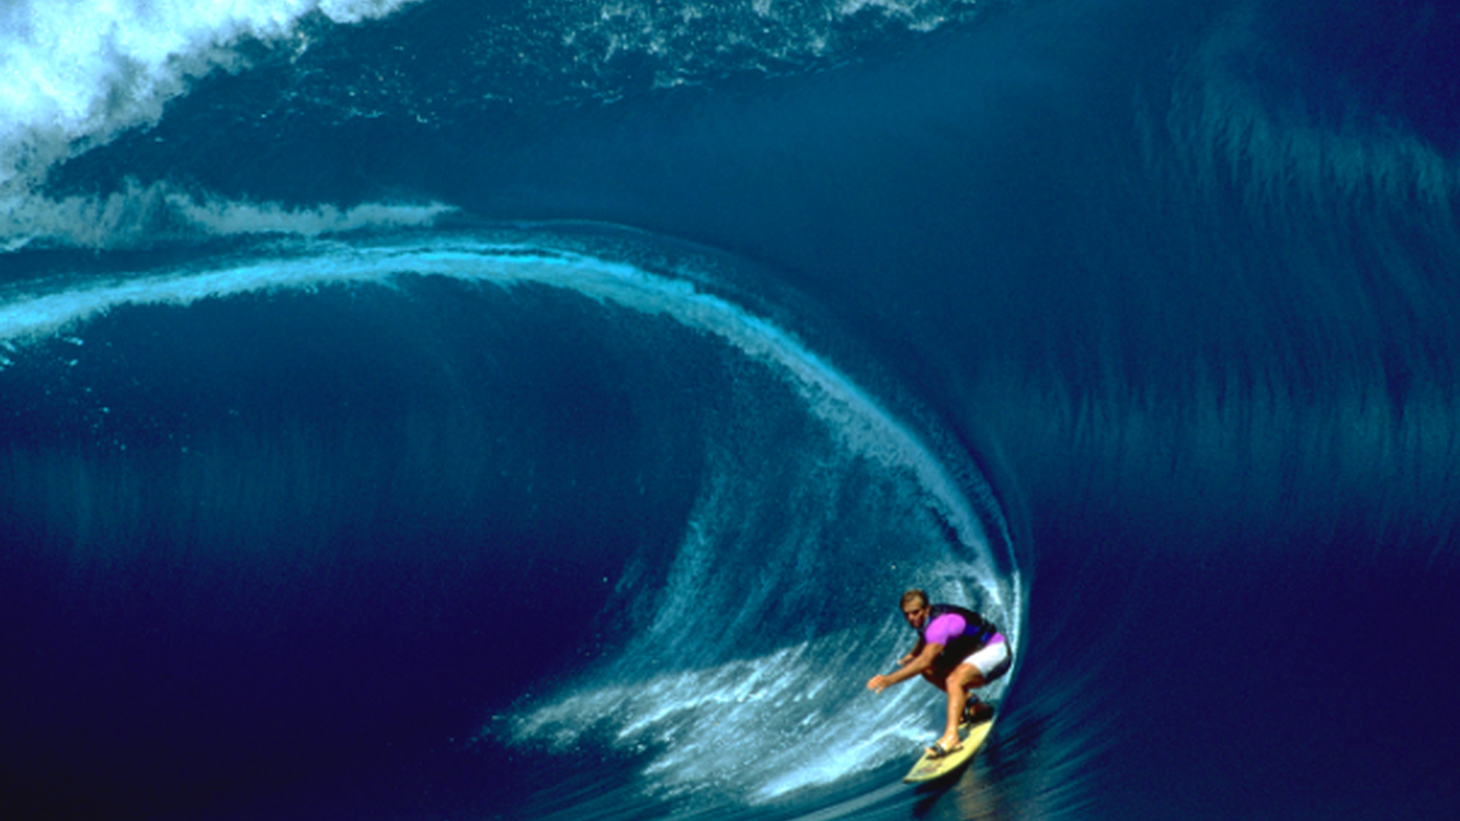 """A new film film spotlights big wave surfer Laird Hamilton's tumultuous upbringing in Hawaii, his love of the ocean, and his """"fear defect."""" What drives him to chase monster waves all over the world?"""